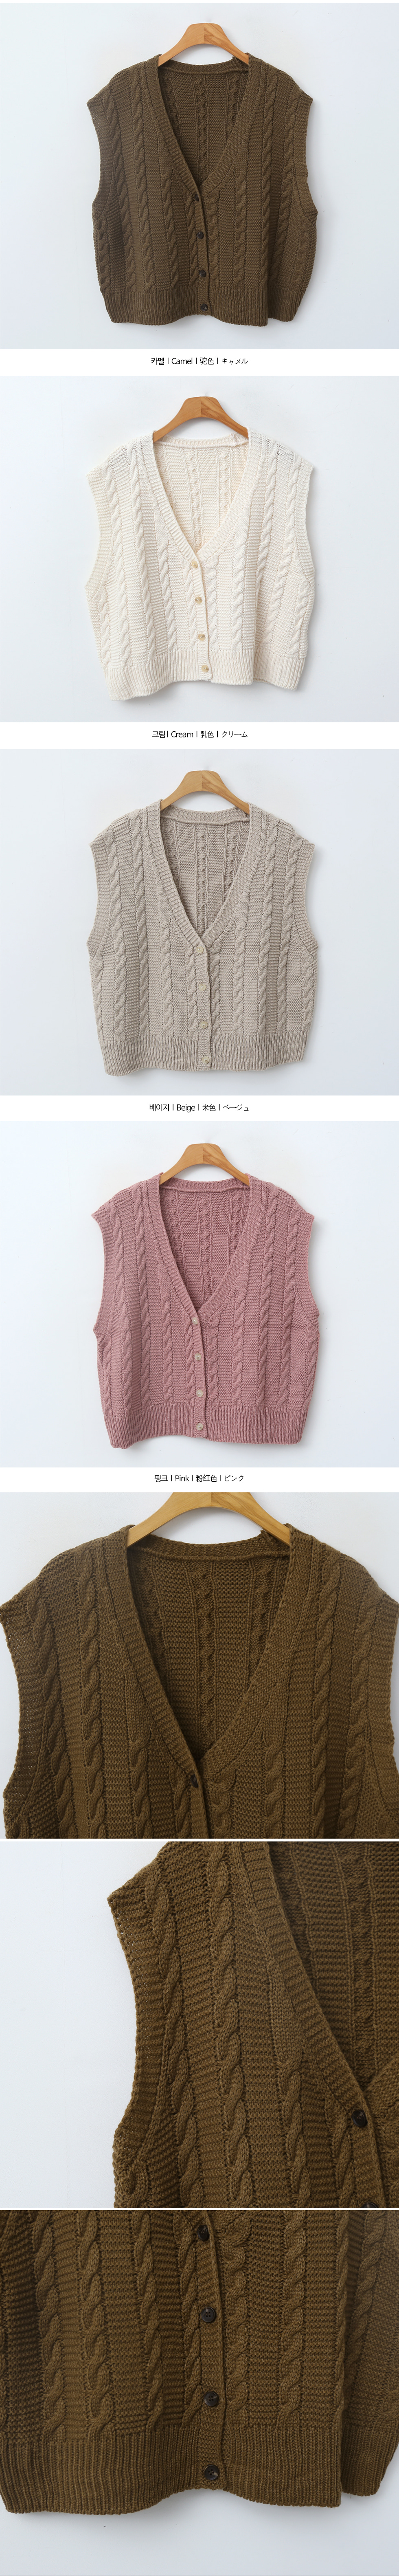 Spoon Twisted Vest